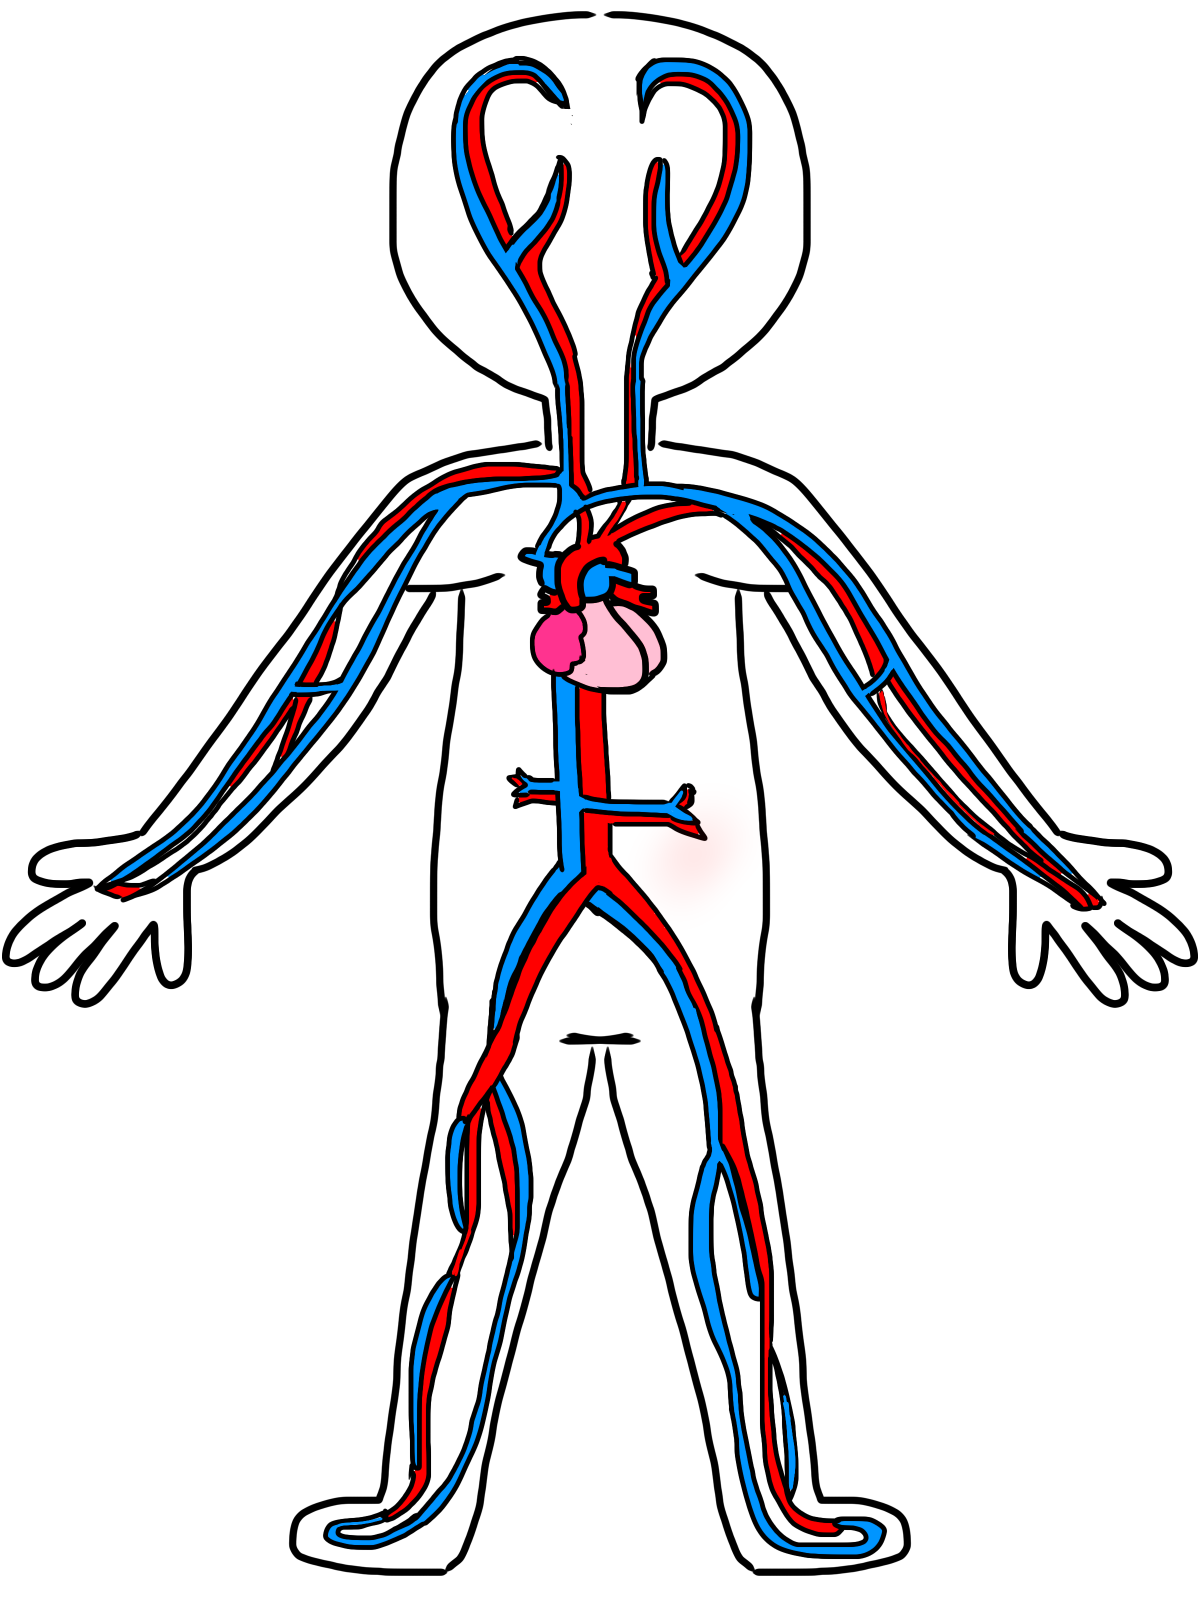 Human organ system drawing